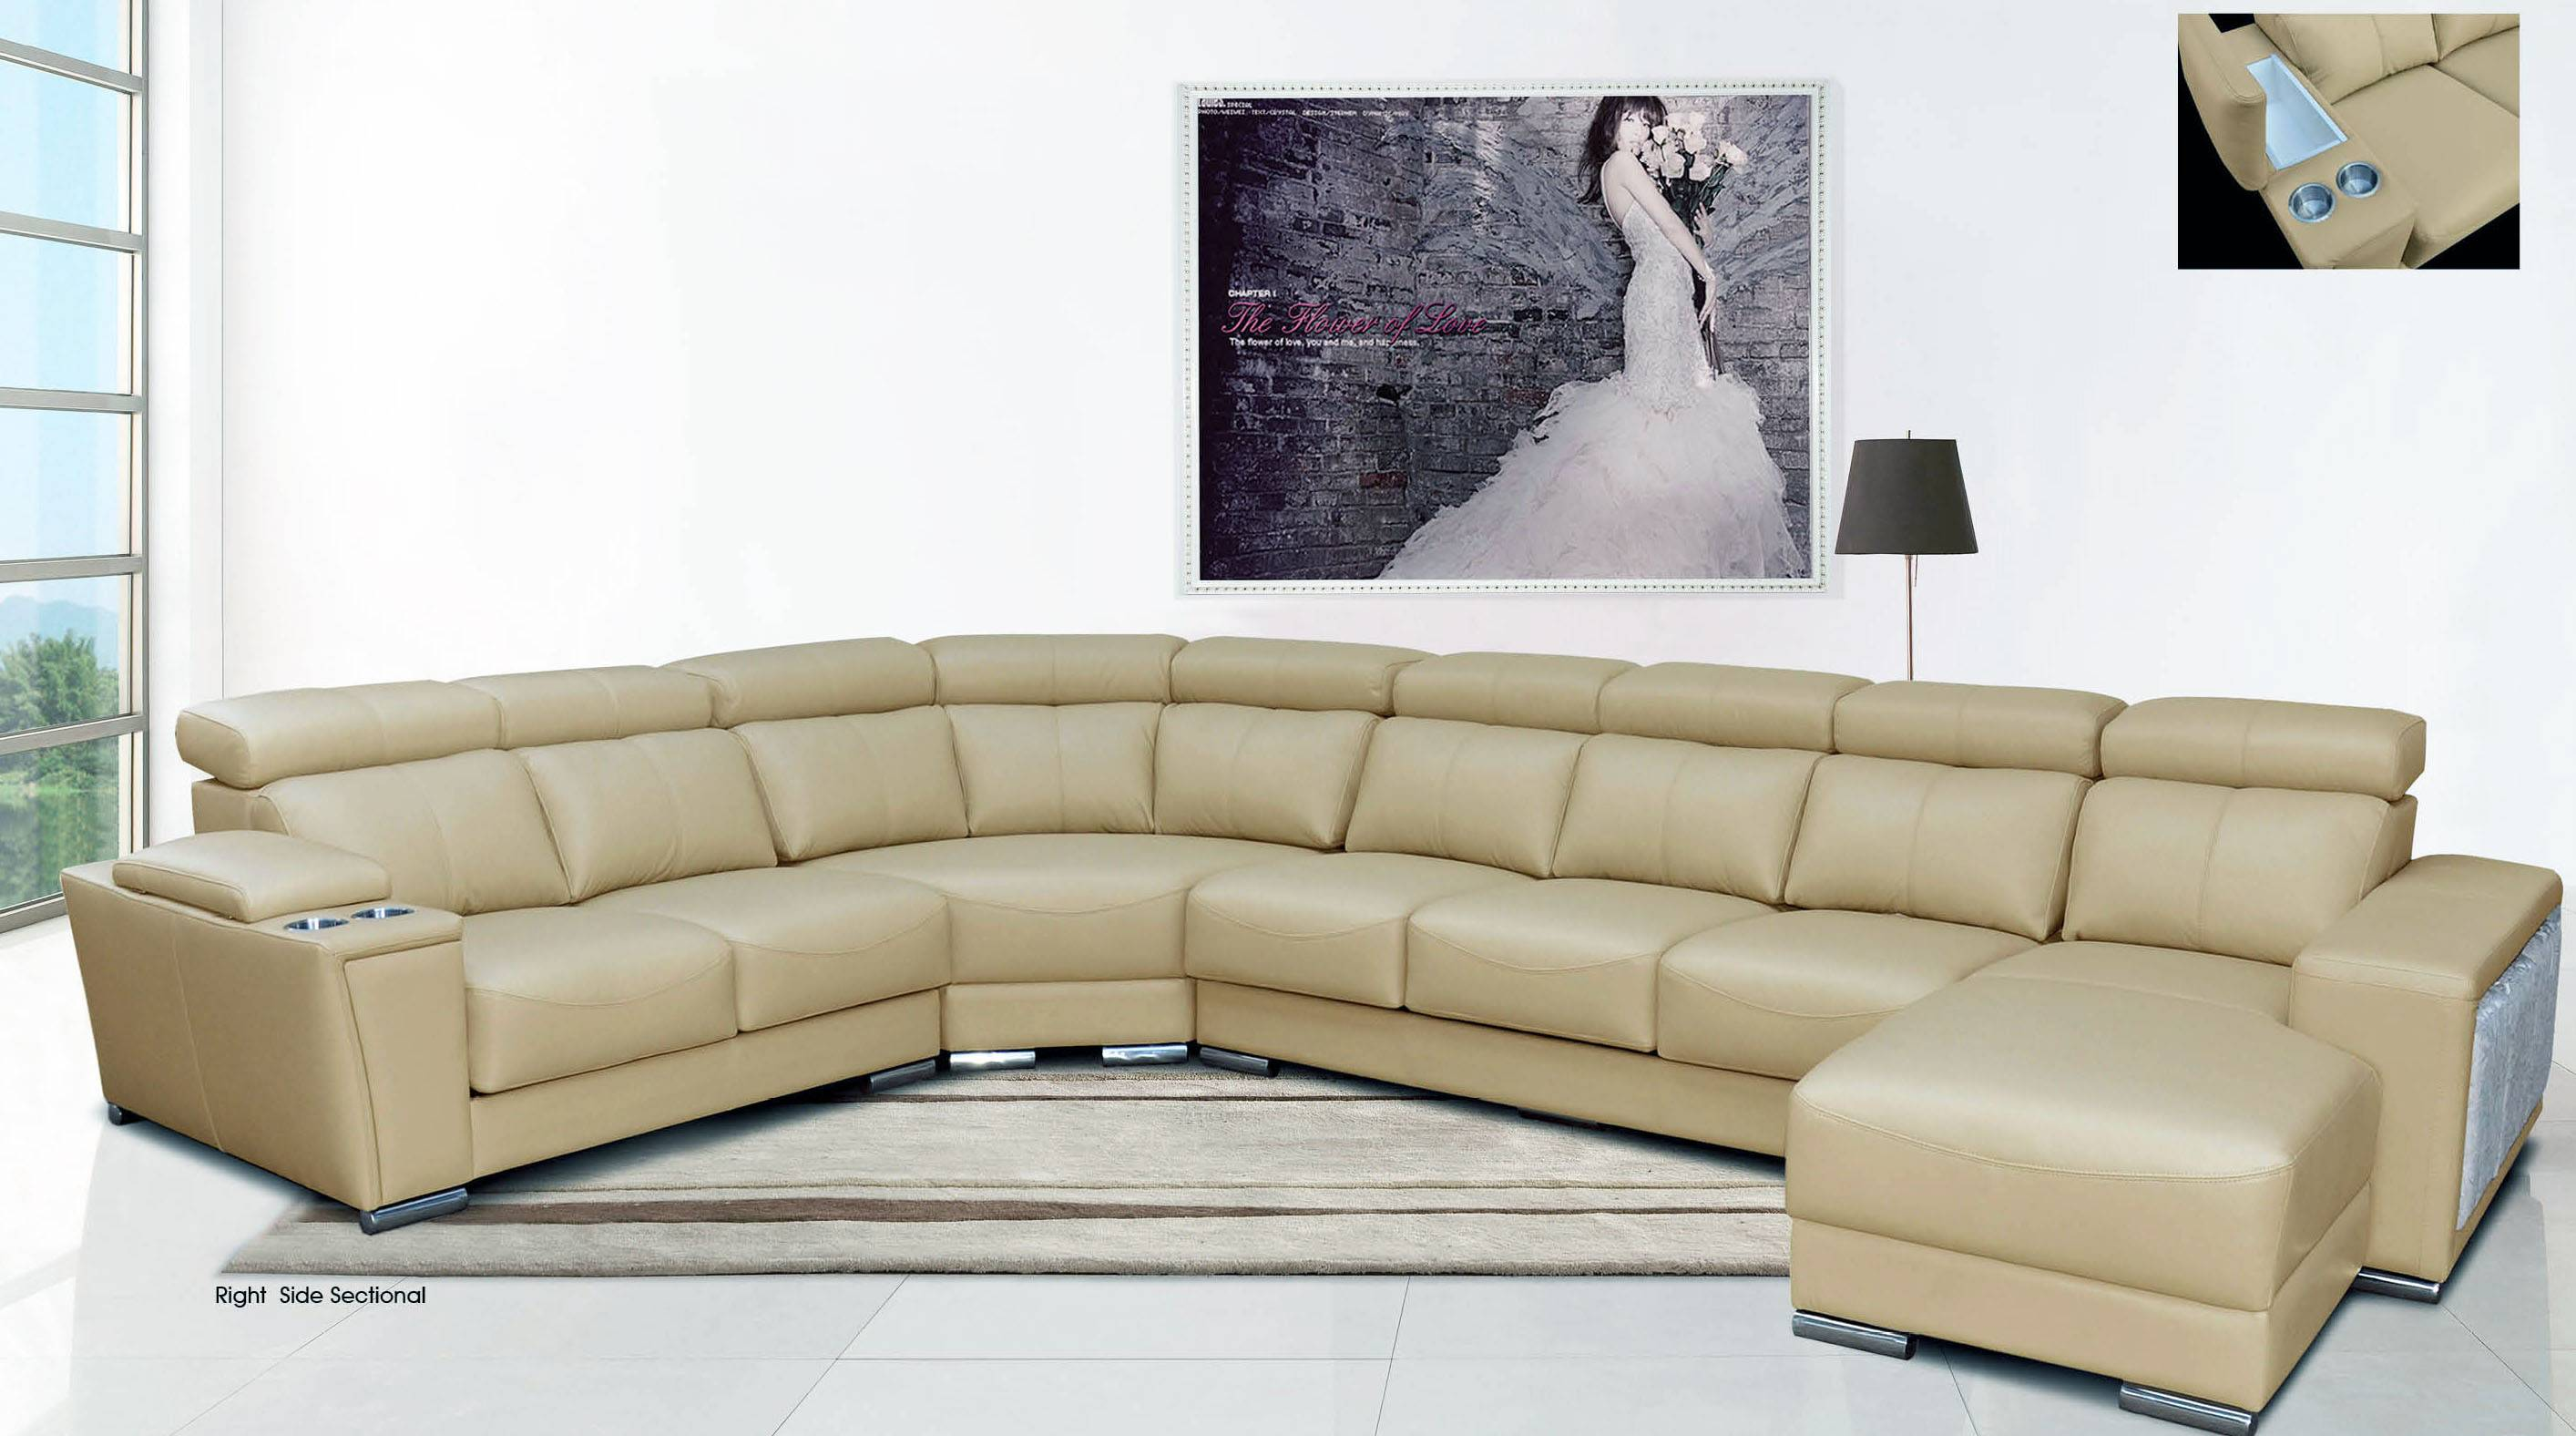 new arrival dc52e 7998d Cream Italian Leather Extra Large Sectional with Cup Holders